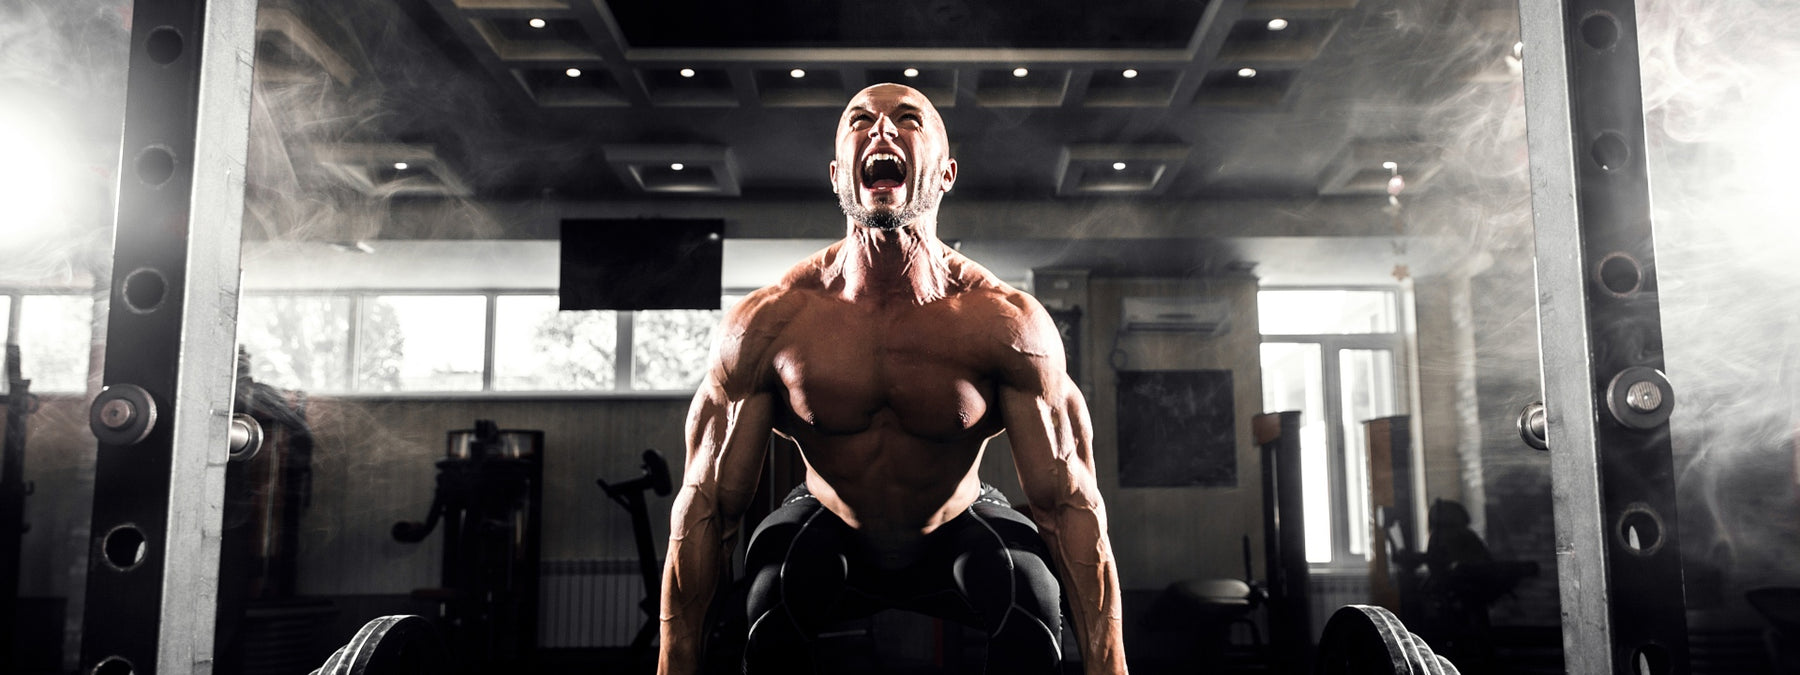 5 Steps to Gain Muscle Fast and Dominate the Gym - Workout Included!